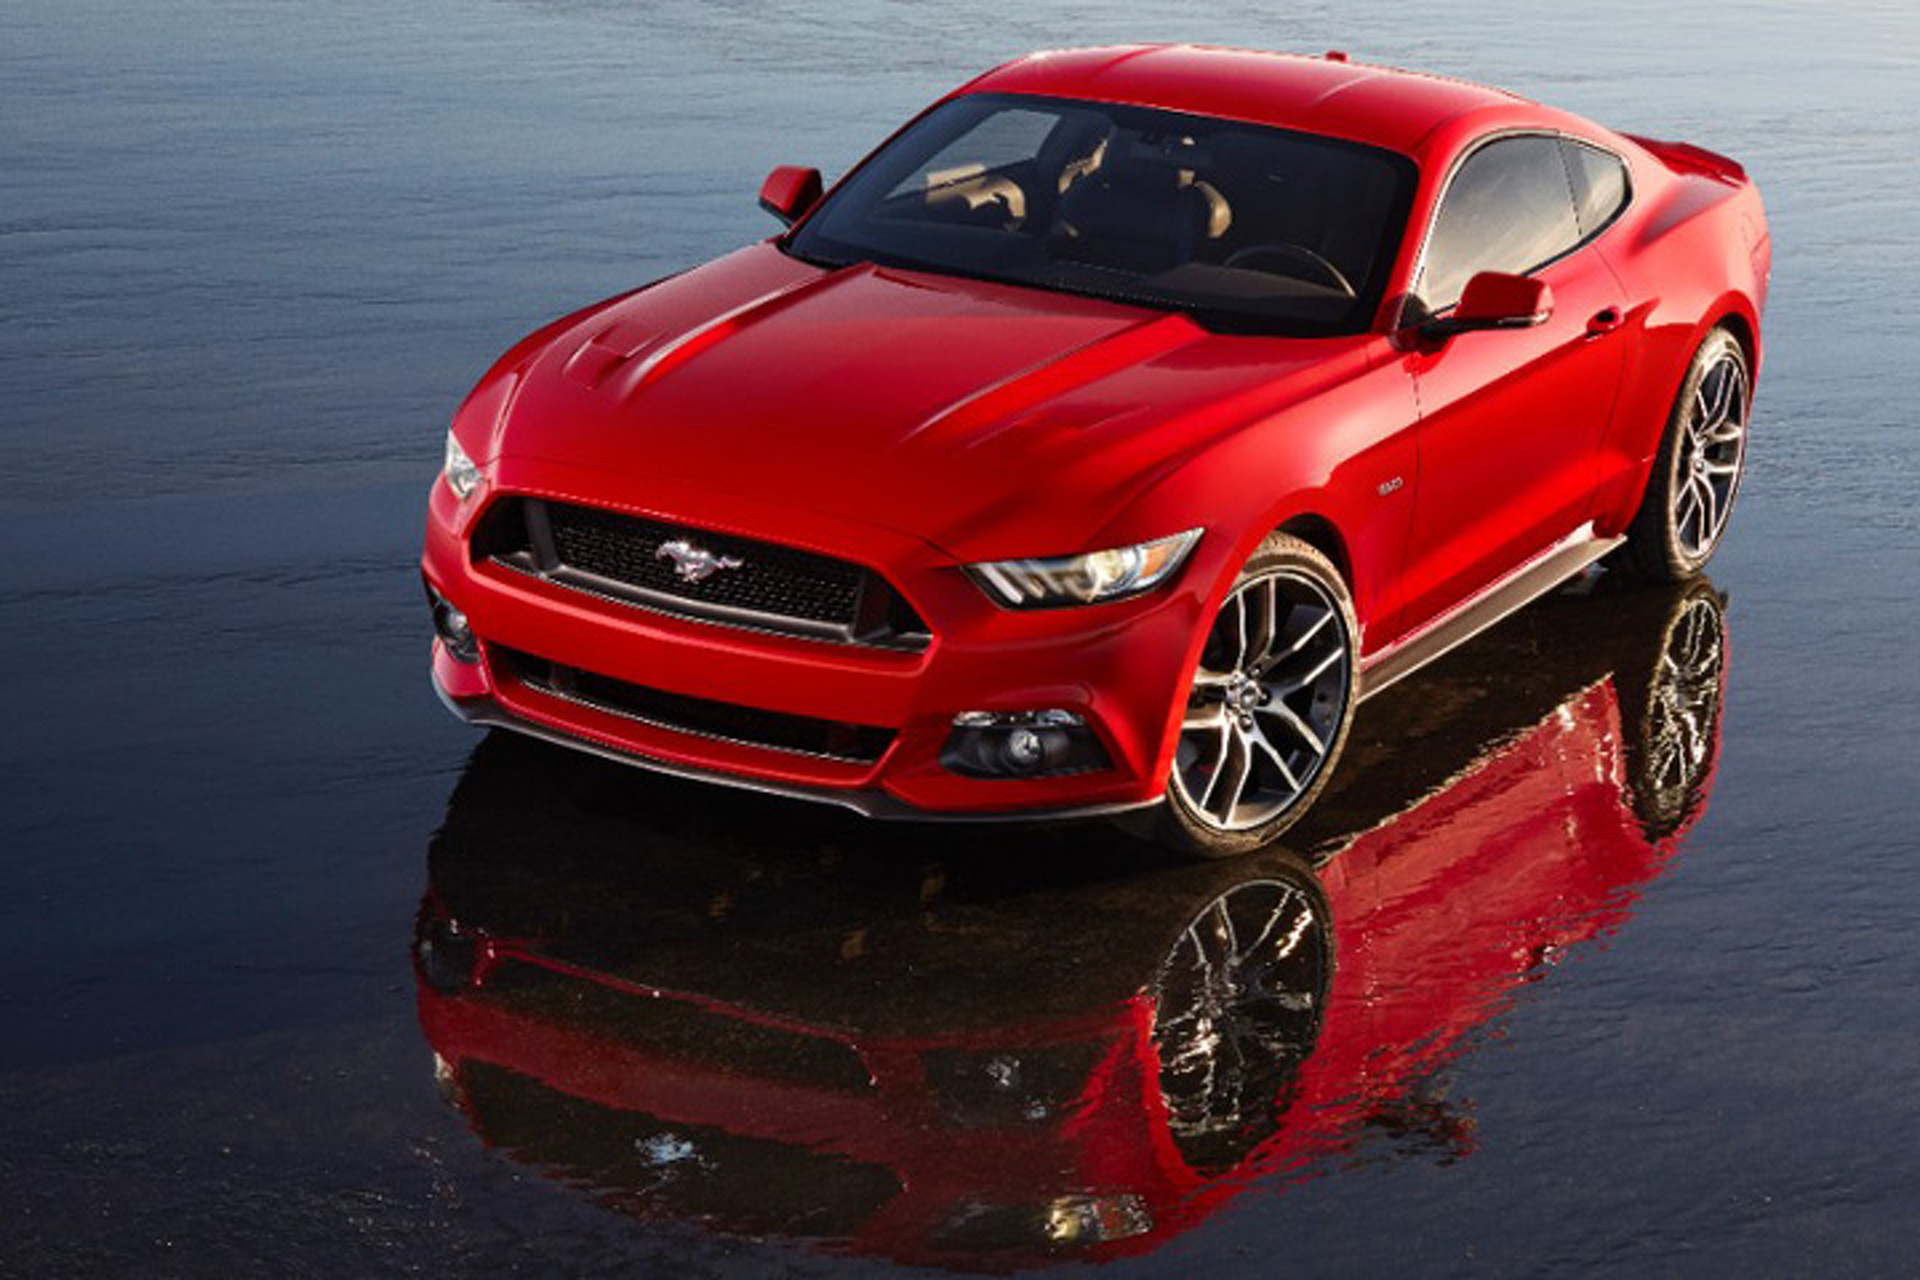 2015 Ford Mustangs Roll Off Assembly Line